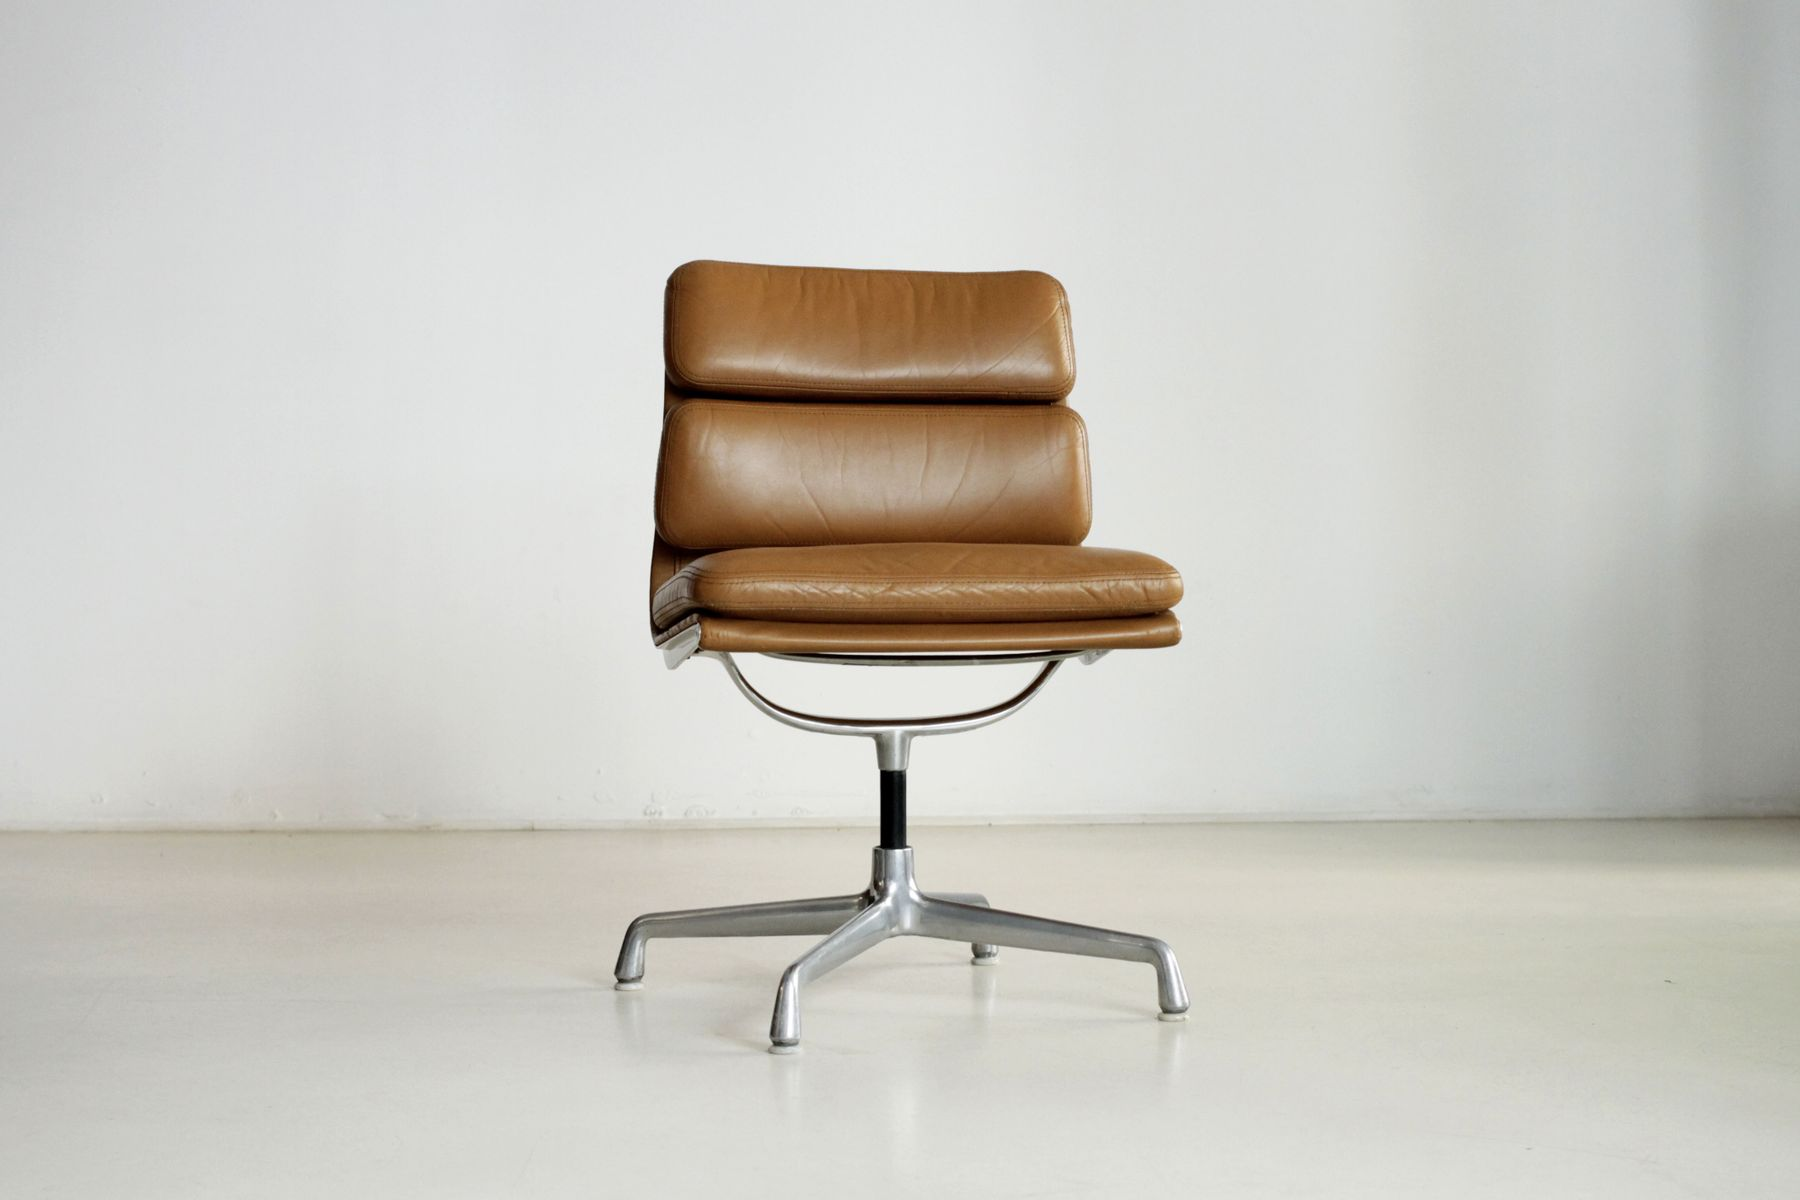 Cognac soft pad office chair by charles eames for herman miller for sale at p - Herman miller france ...